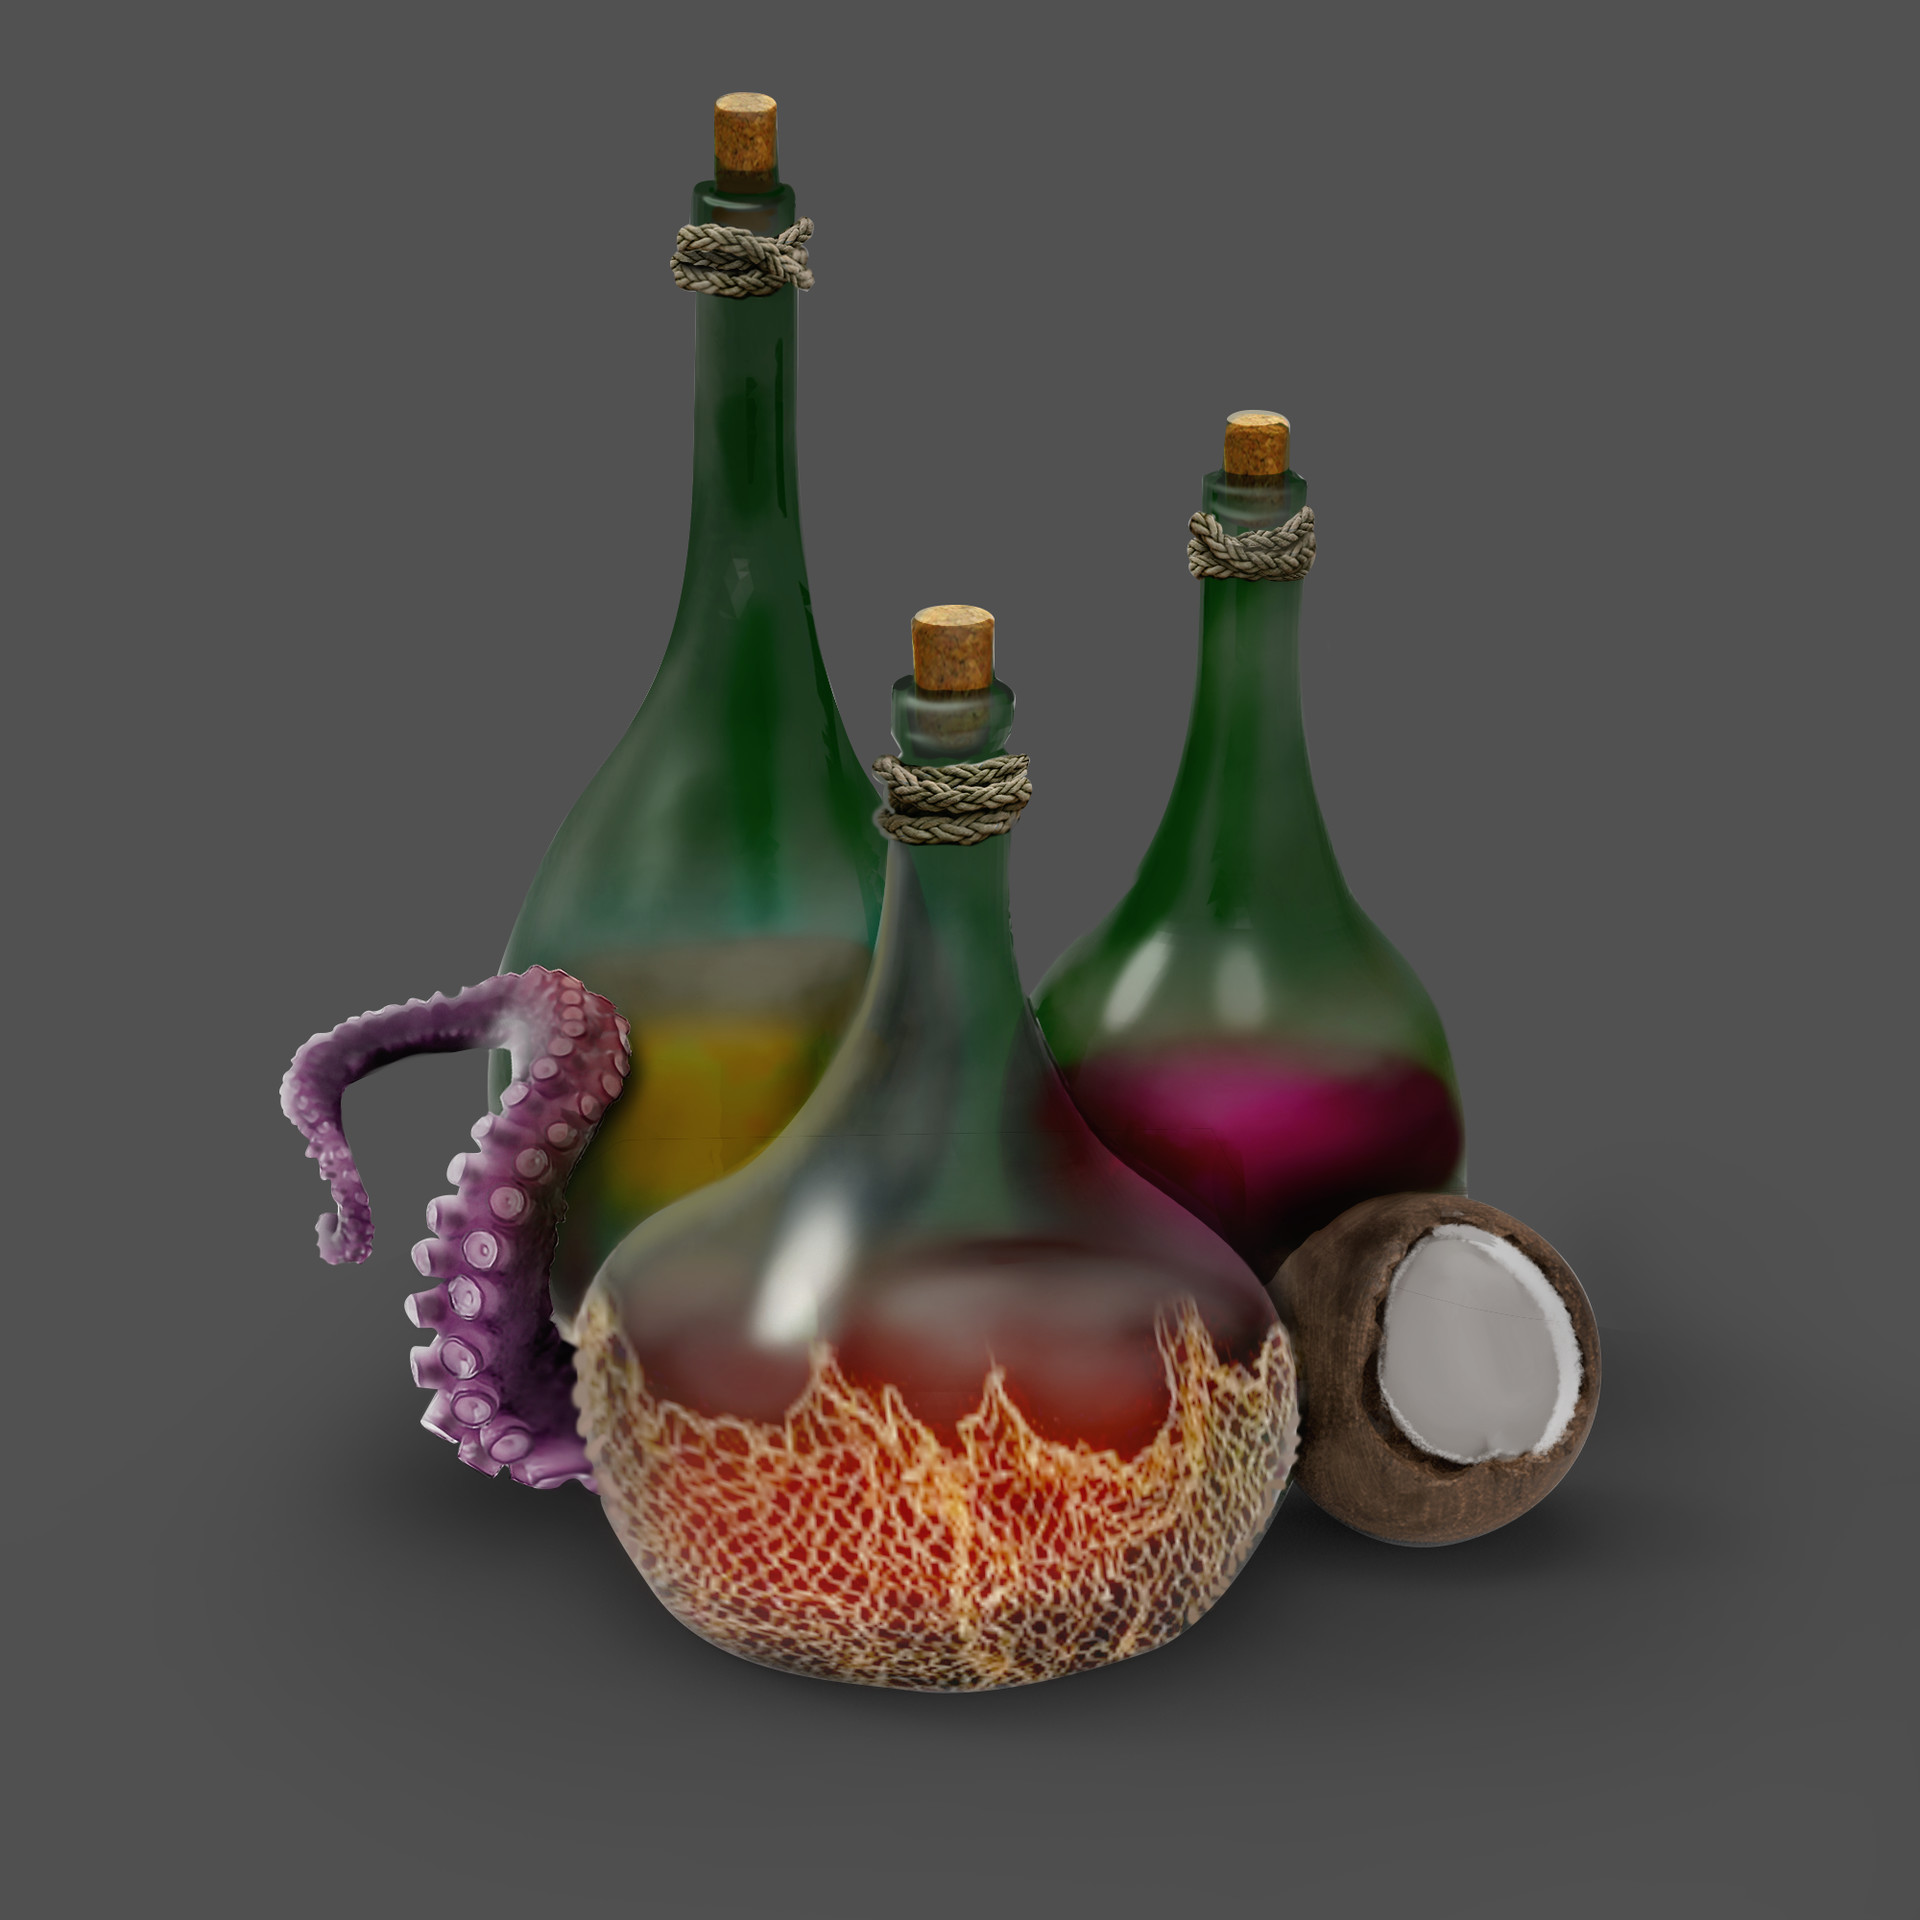 Magical rum potions